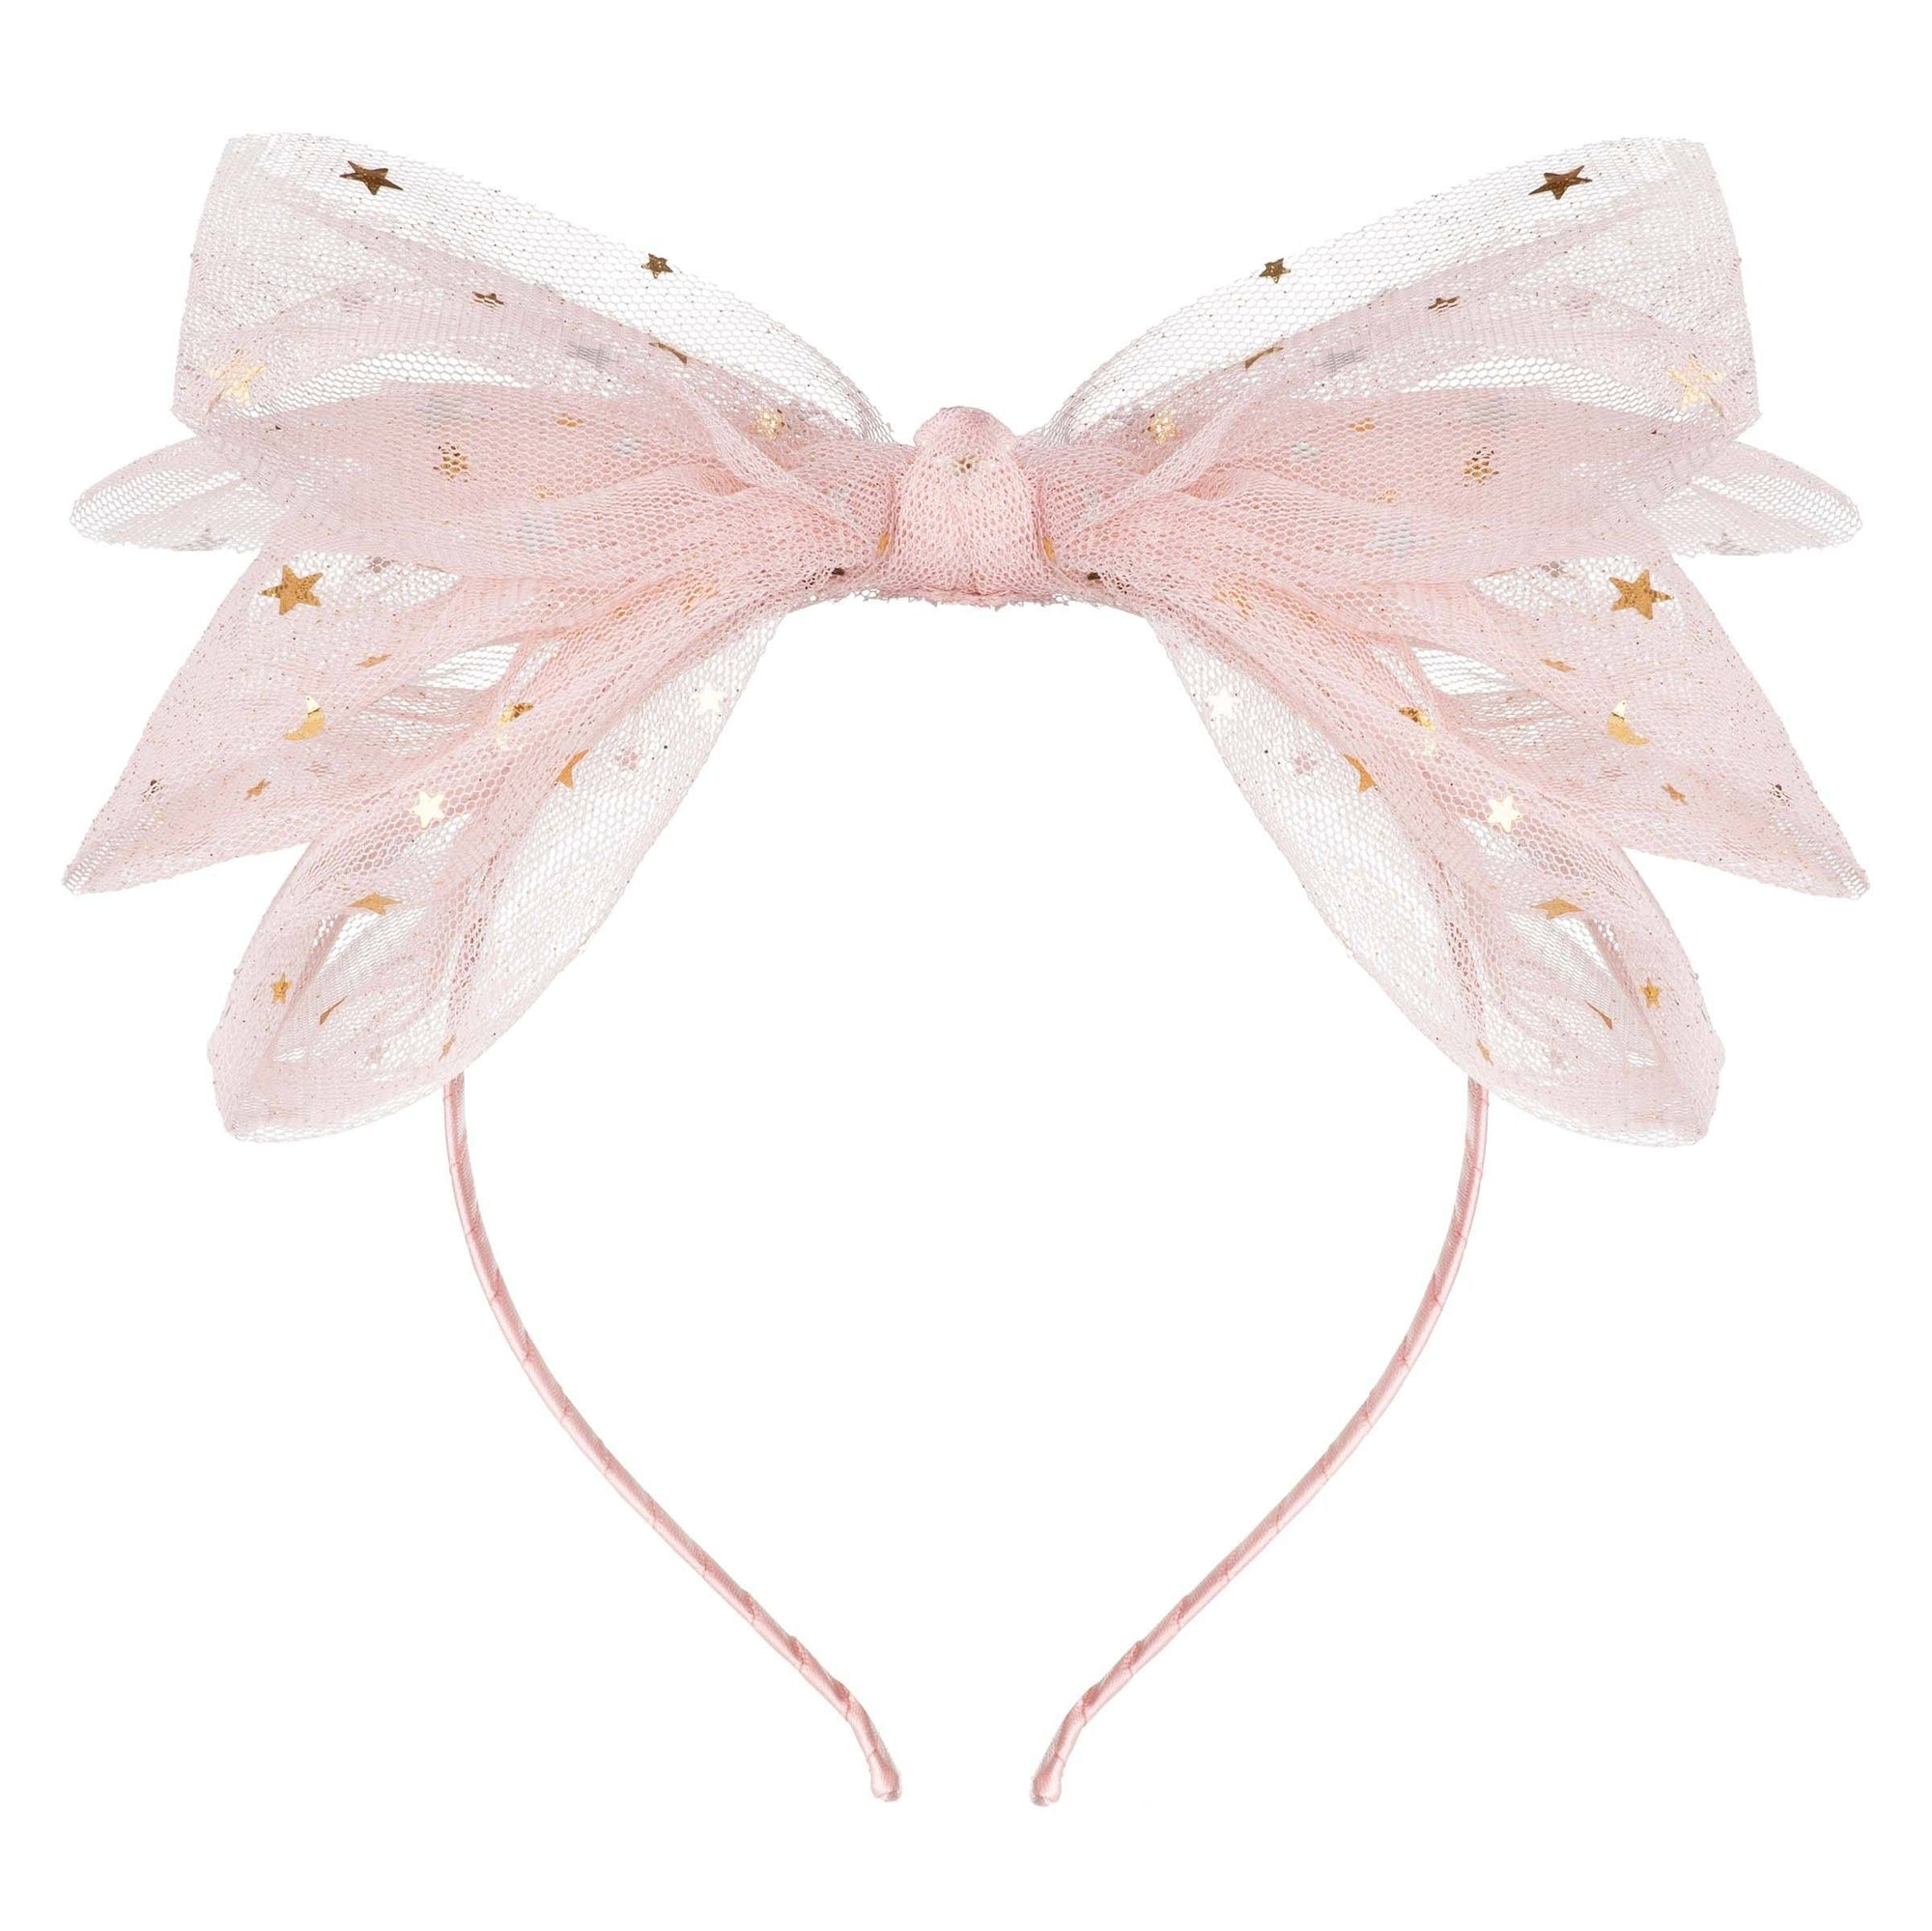 Buy Gigi Gold Star Headband - Designer Kidz | Special Occasions, Party Wear & Weddings  | Sizes 000-16 | Little Girls Party Dresses, Tutu Dresses, Flower Girl Dresses | Pay with Afterpay | Free AU Delivery Over $80